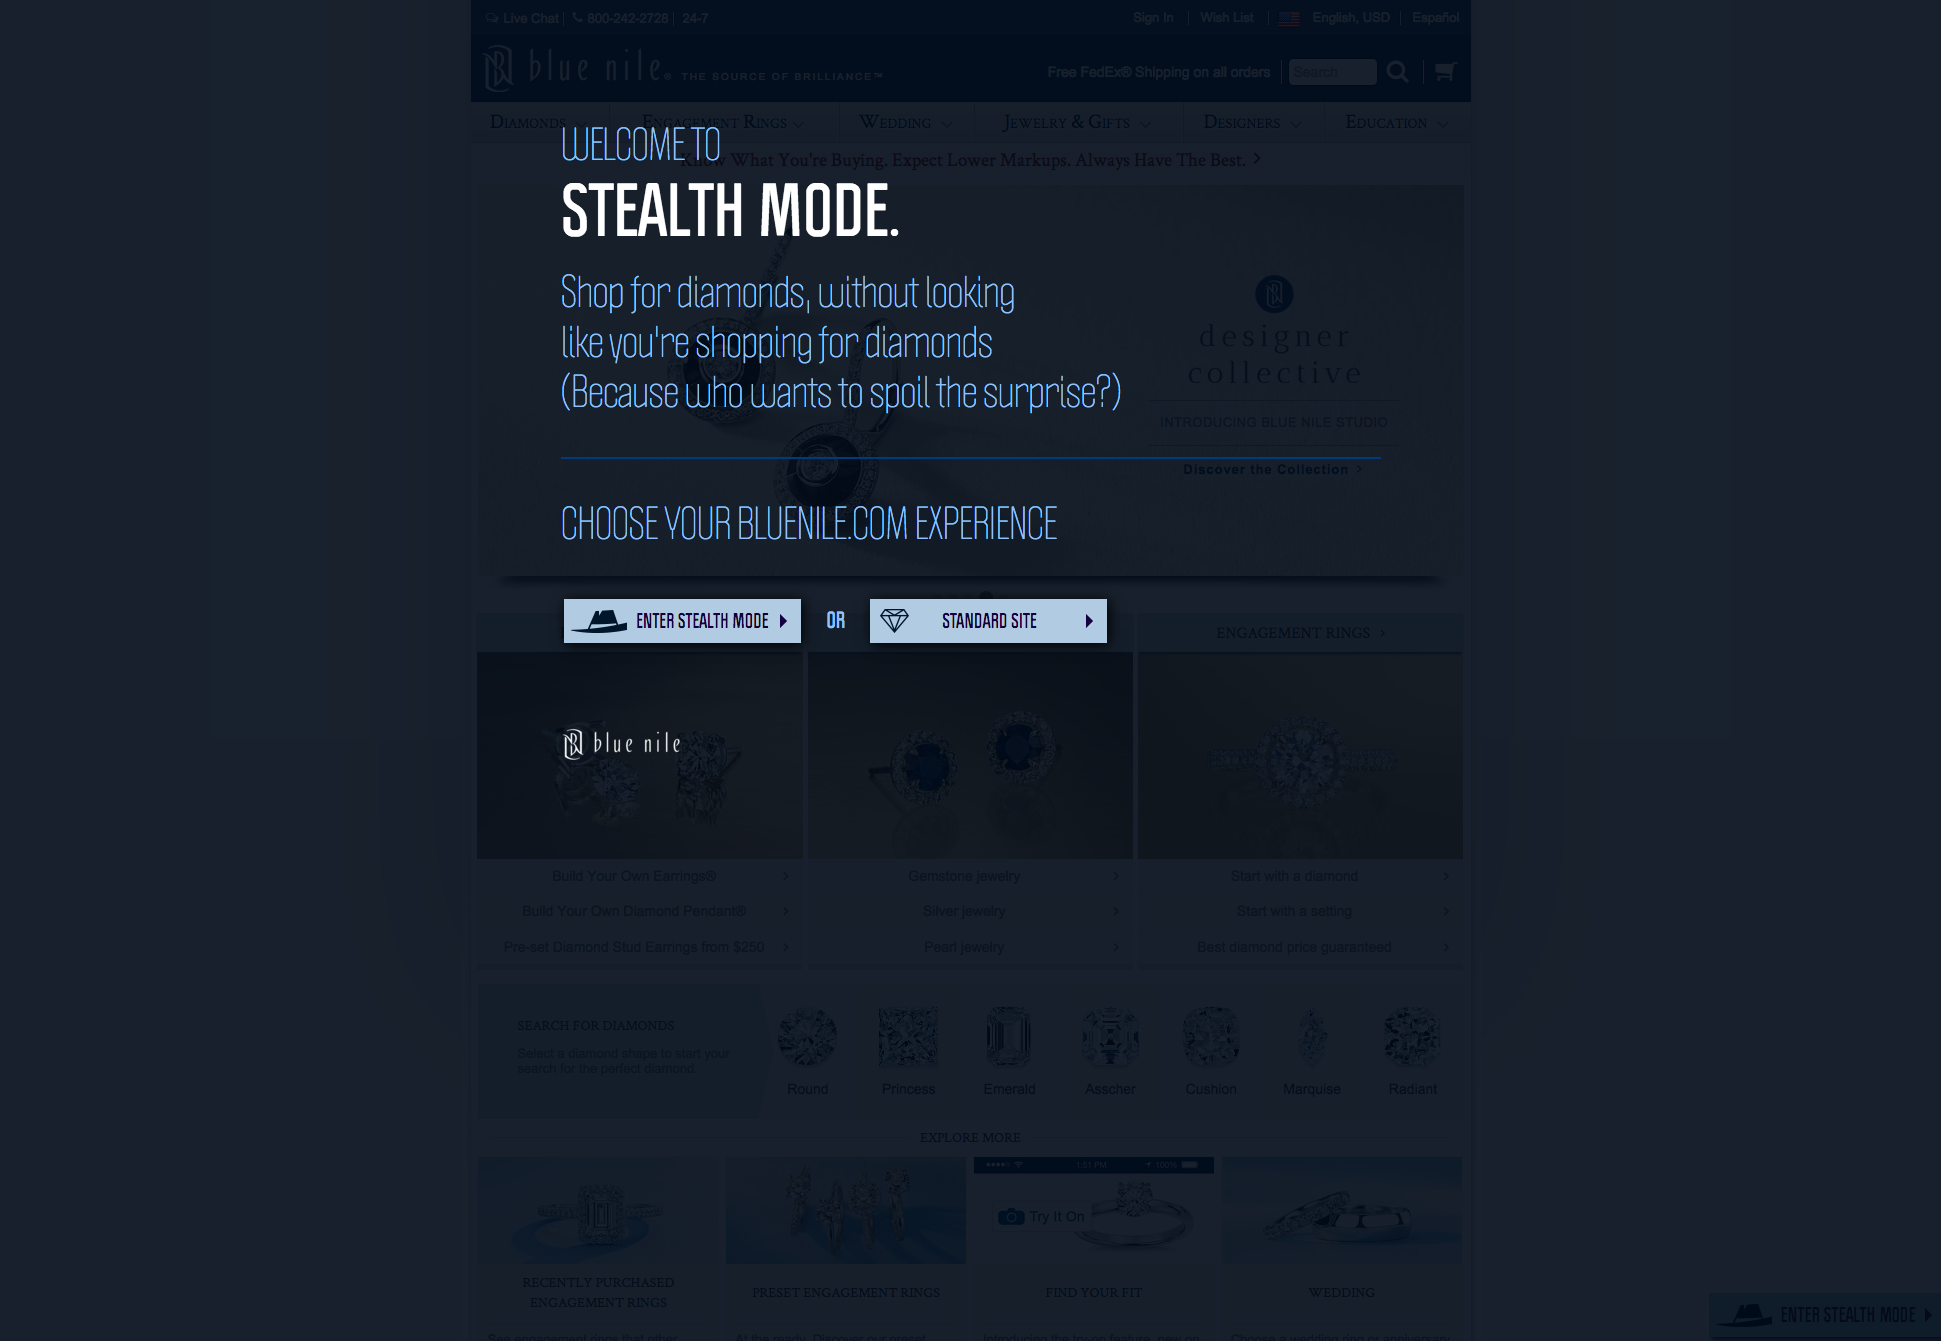 """After clicking the banner, users are given the option to enter """"Stealth Mode""""."""